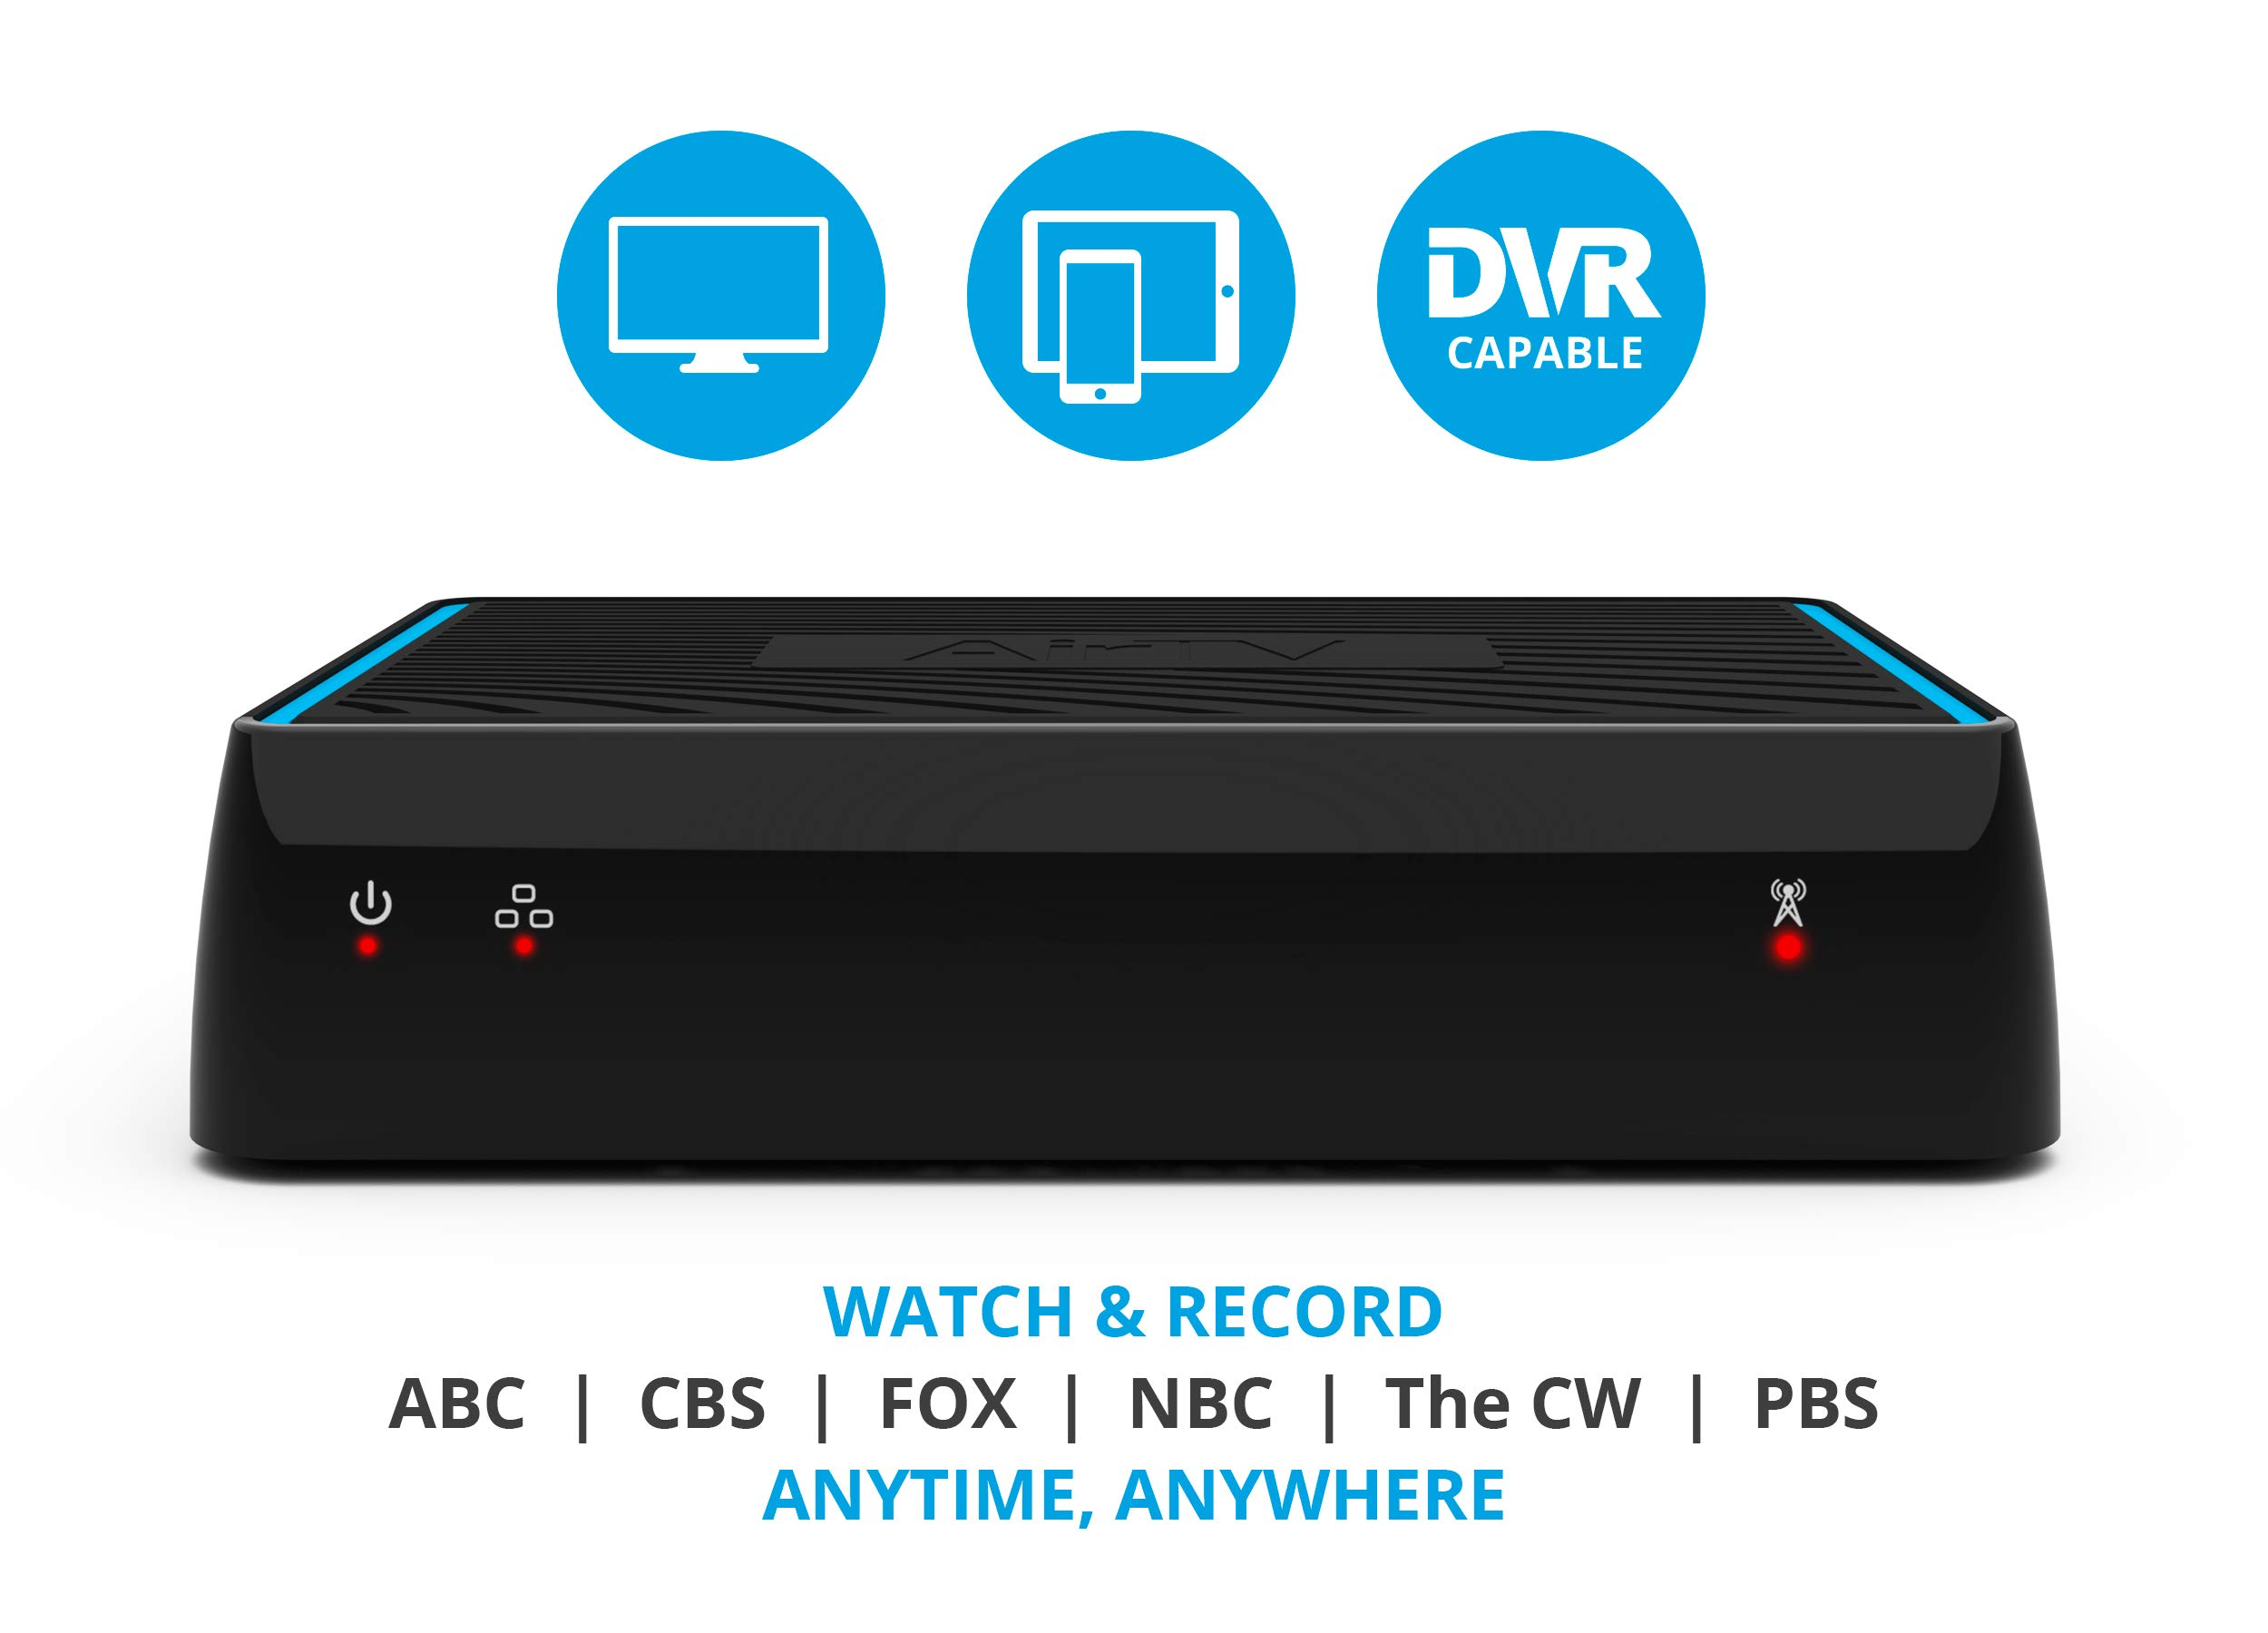 AirTV | Dual-tuner Local Channel Streamer for TVs and Mobile Devices | DVR Capable | Built for Sling TV by Sling Media